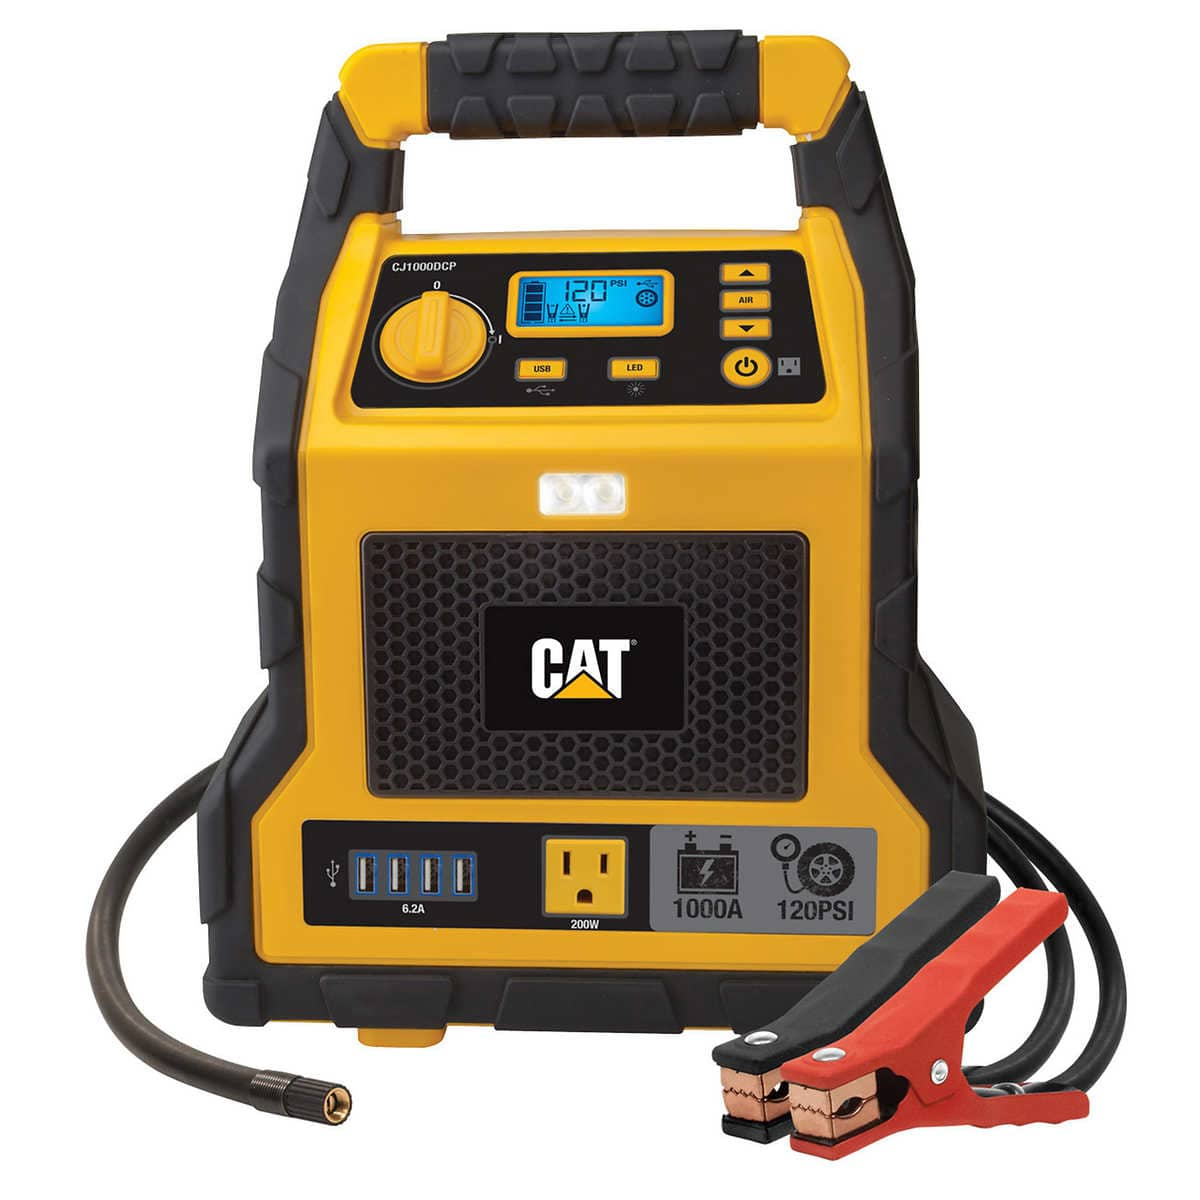 Costco CAT CJ1000DCP 1000Amp 3-in-1 power station jumpstarter and compressor $79.99 Shipped